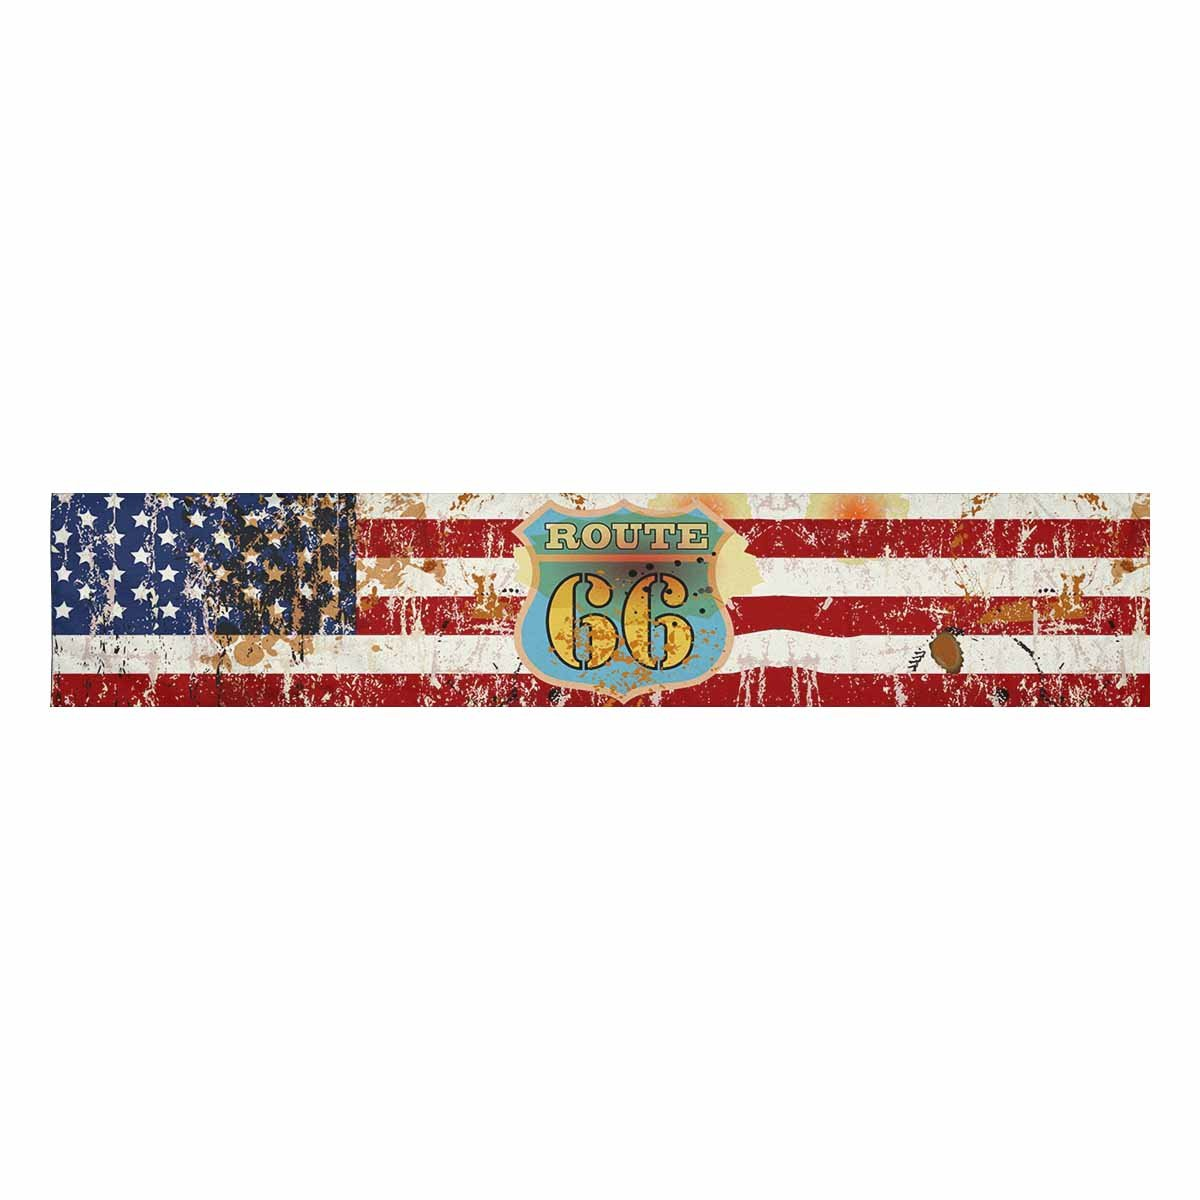 f8fd968bfda1 Amazon.com  InterestPrint Grungy Famous Route Road 66 on Vintage American Flag  Table Runner Cotton Linen Cloth Placemat Home Decor for Home Kitchen Dining  ...